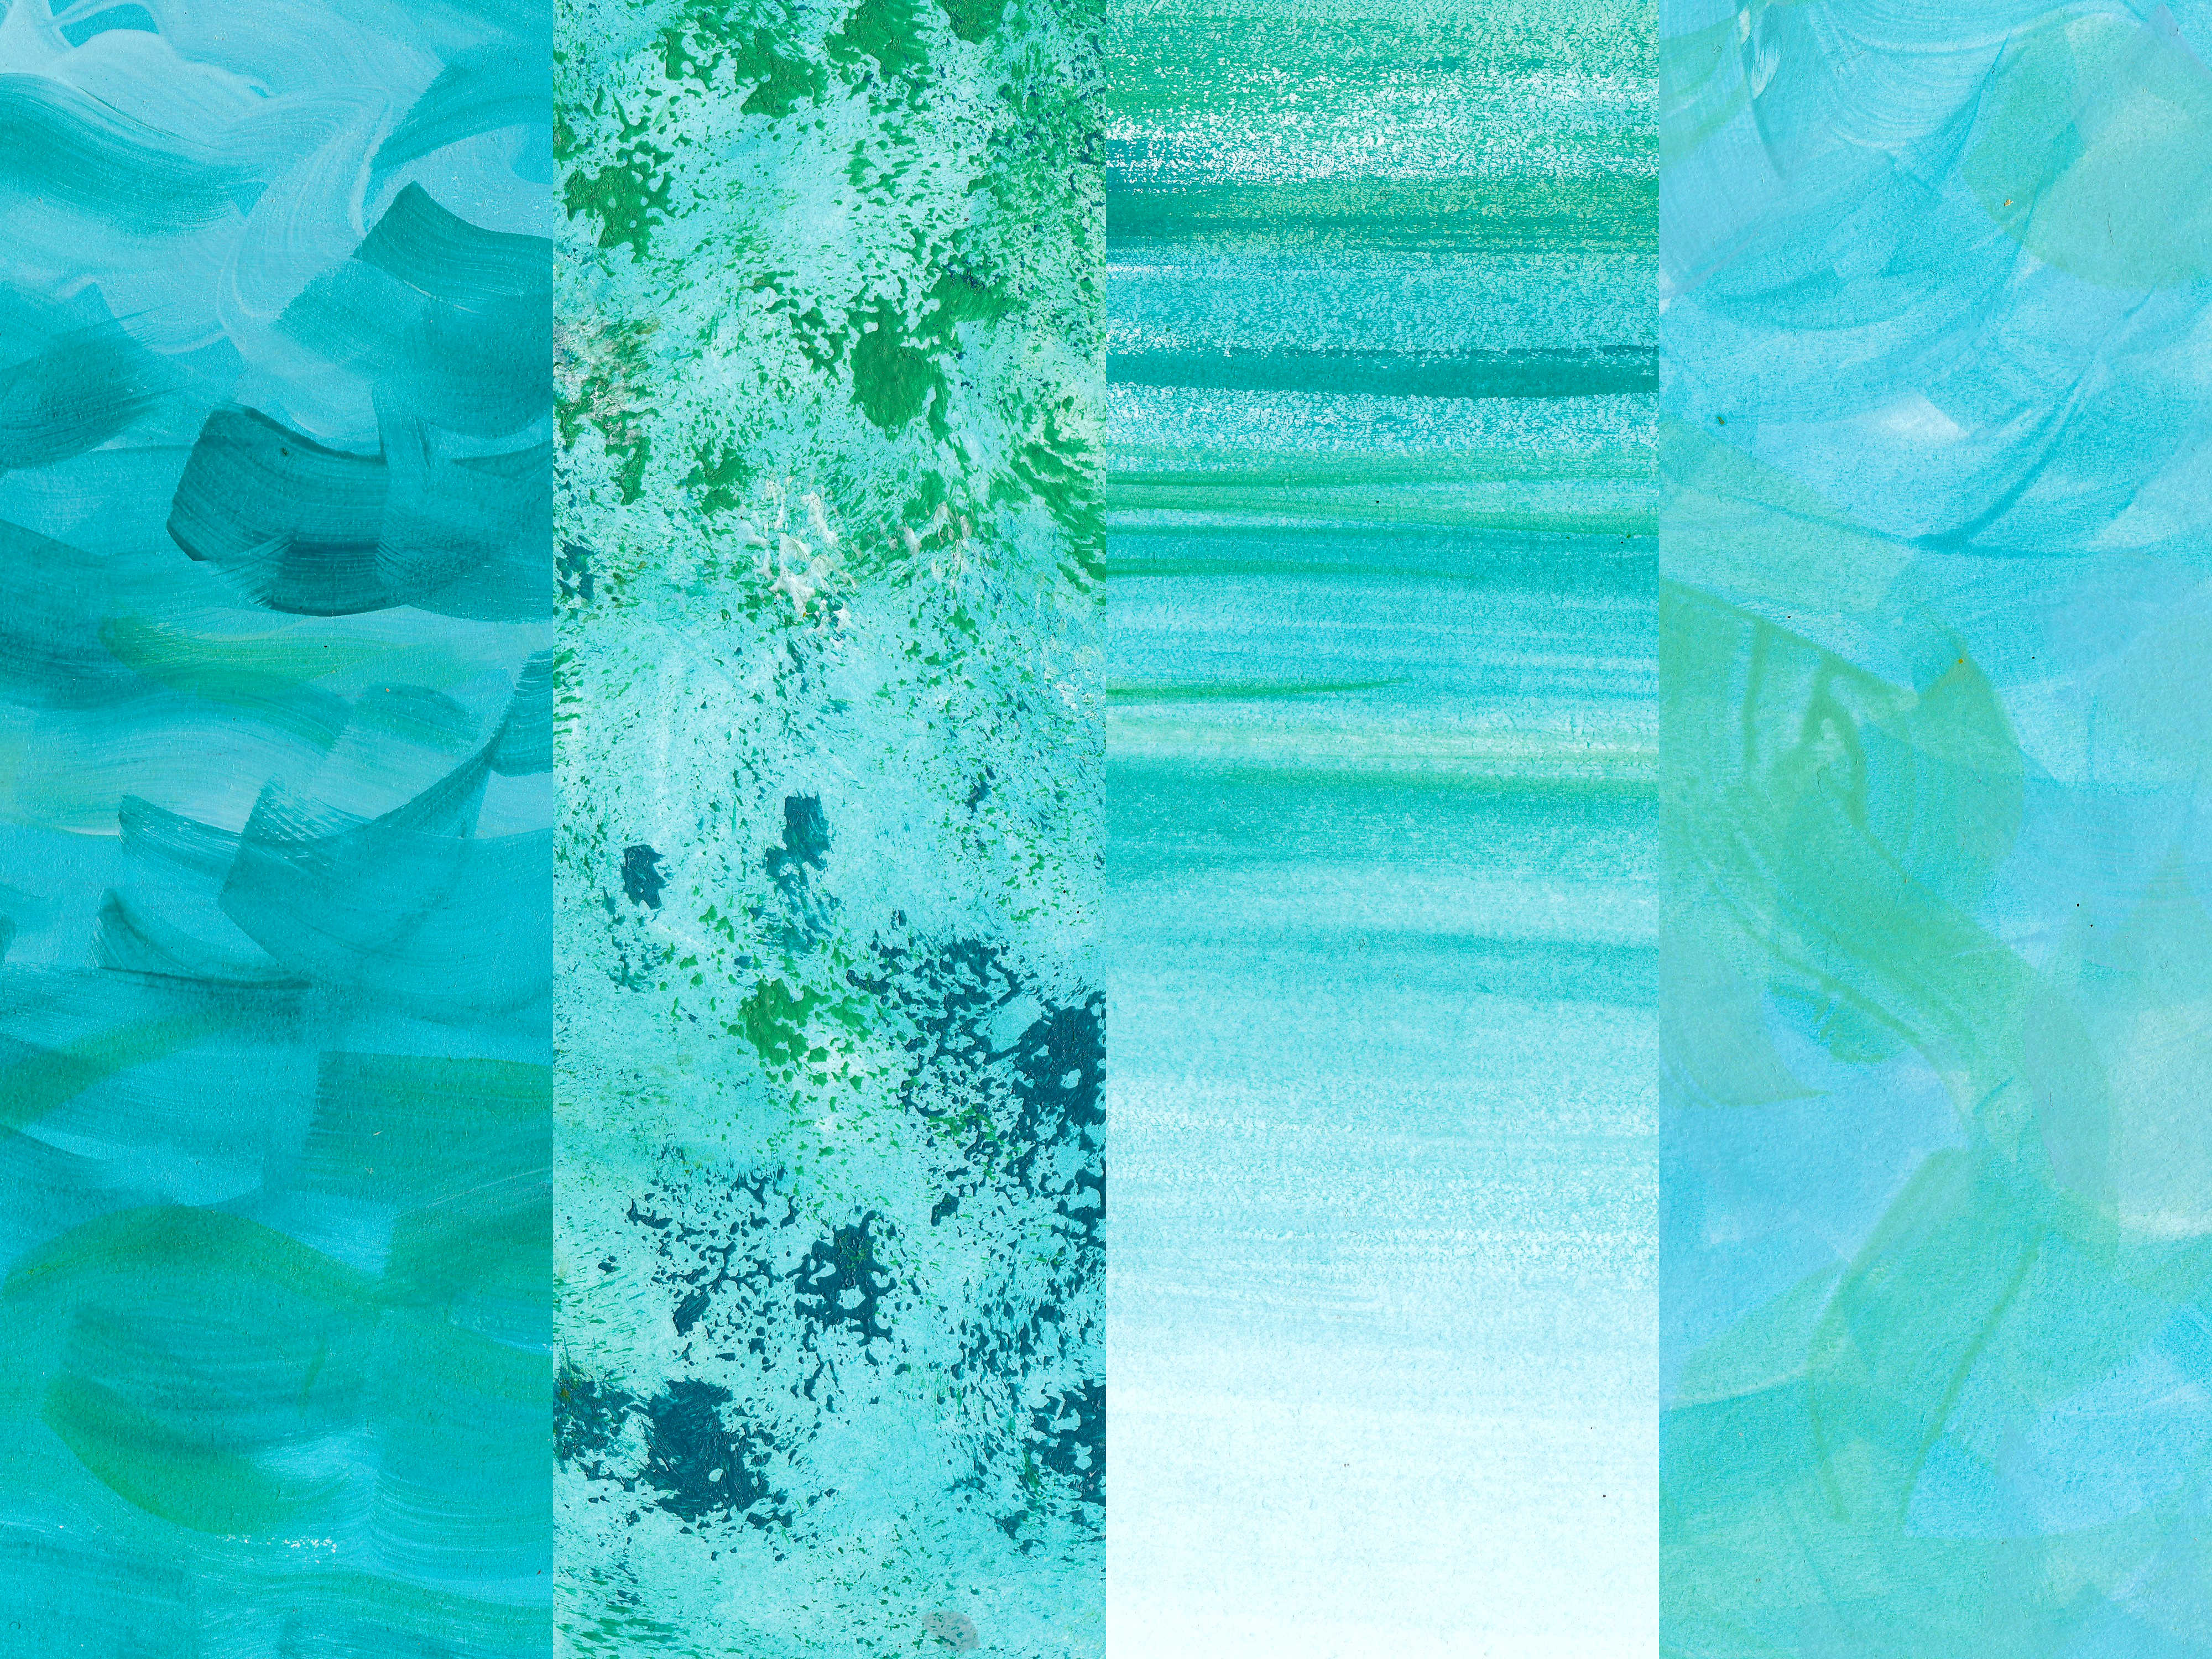 blue-abstract-painting-backgrounds-cover.jpg